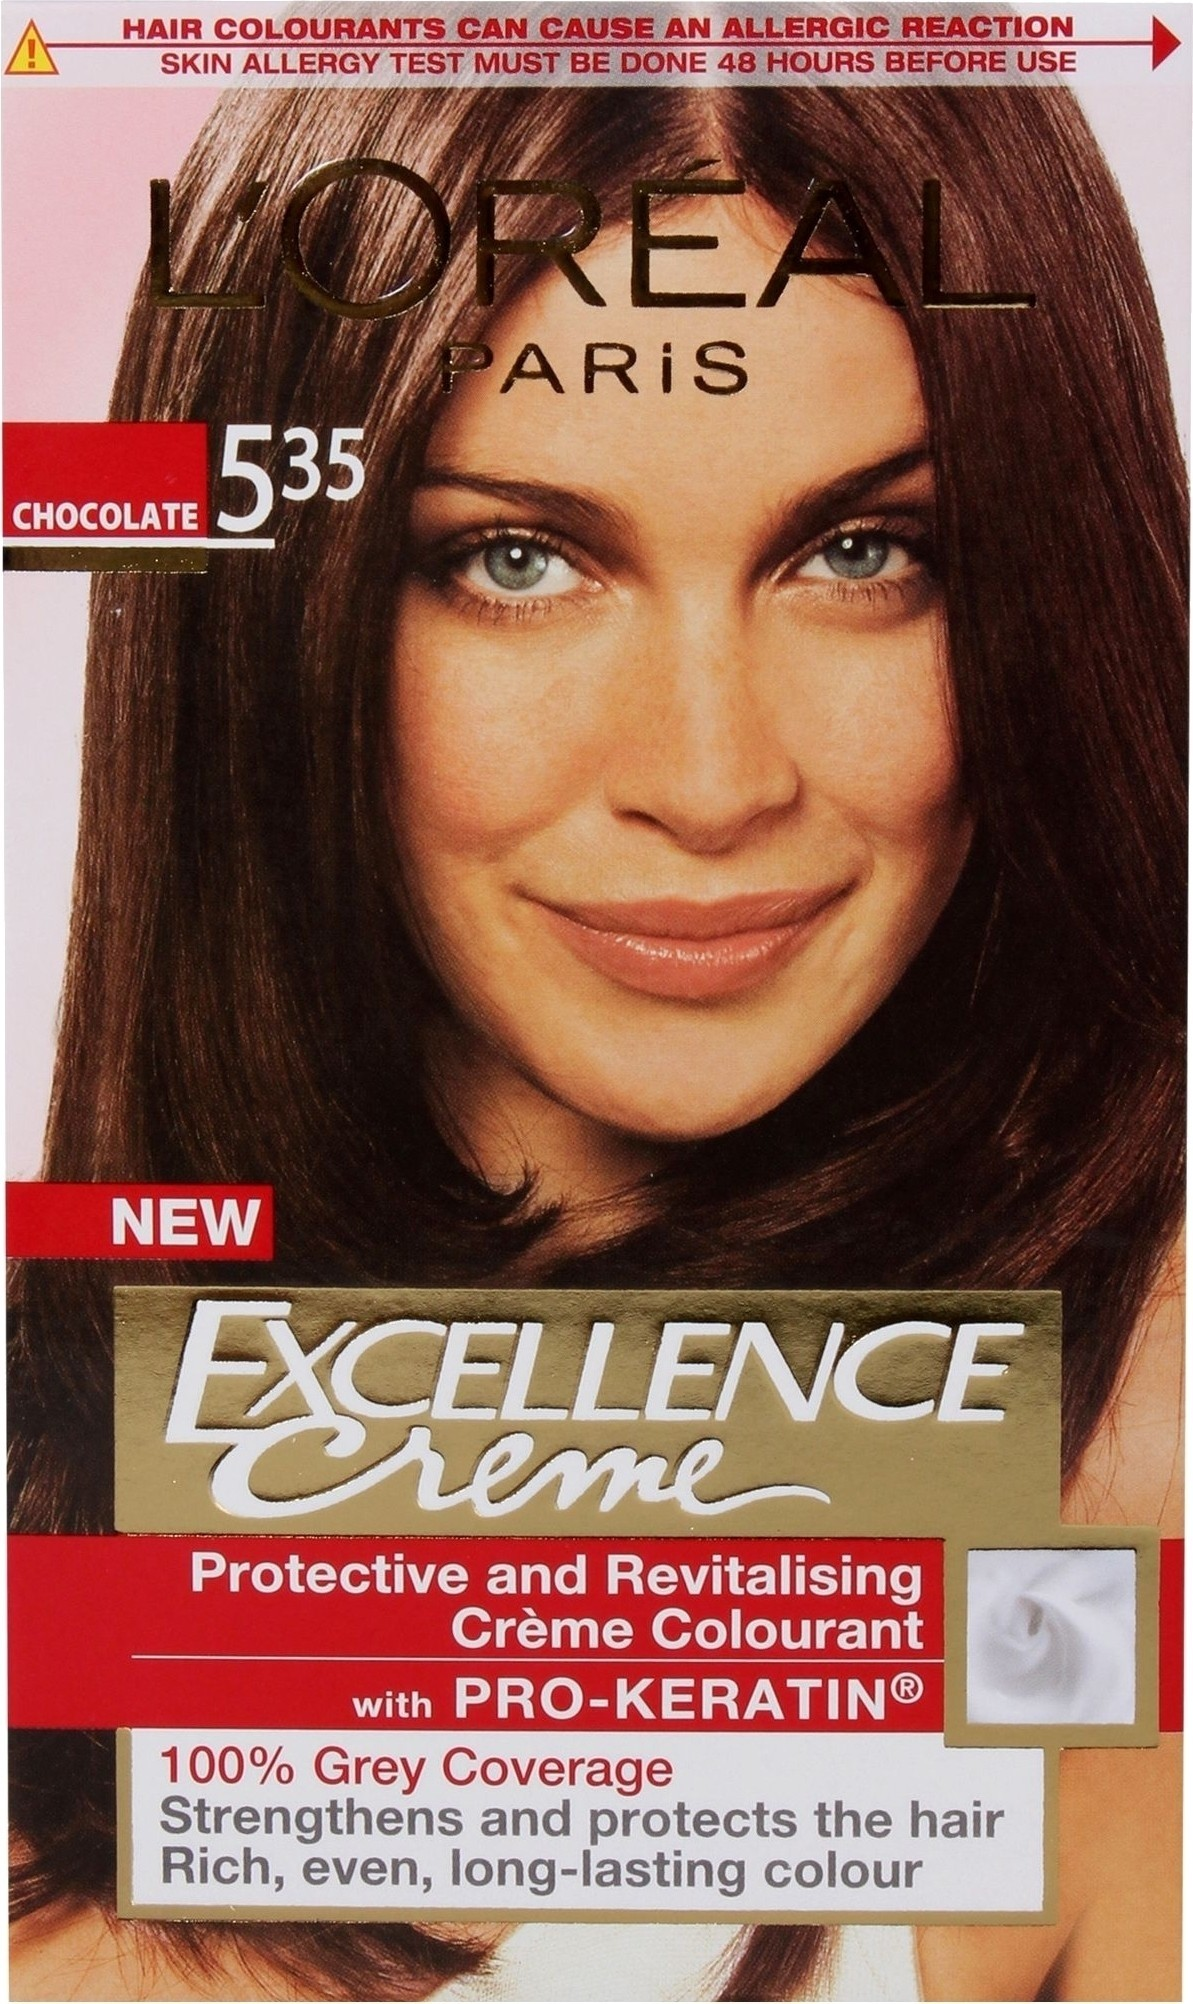 Buy Loreal Paris Excellence Creme Hair Color Chocolate 535